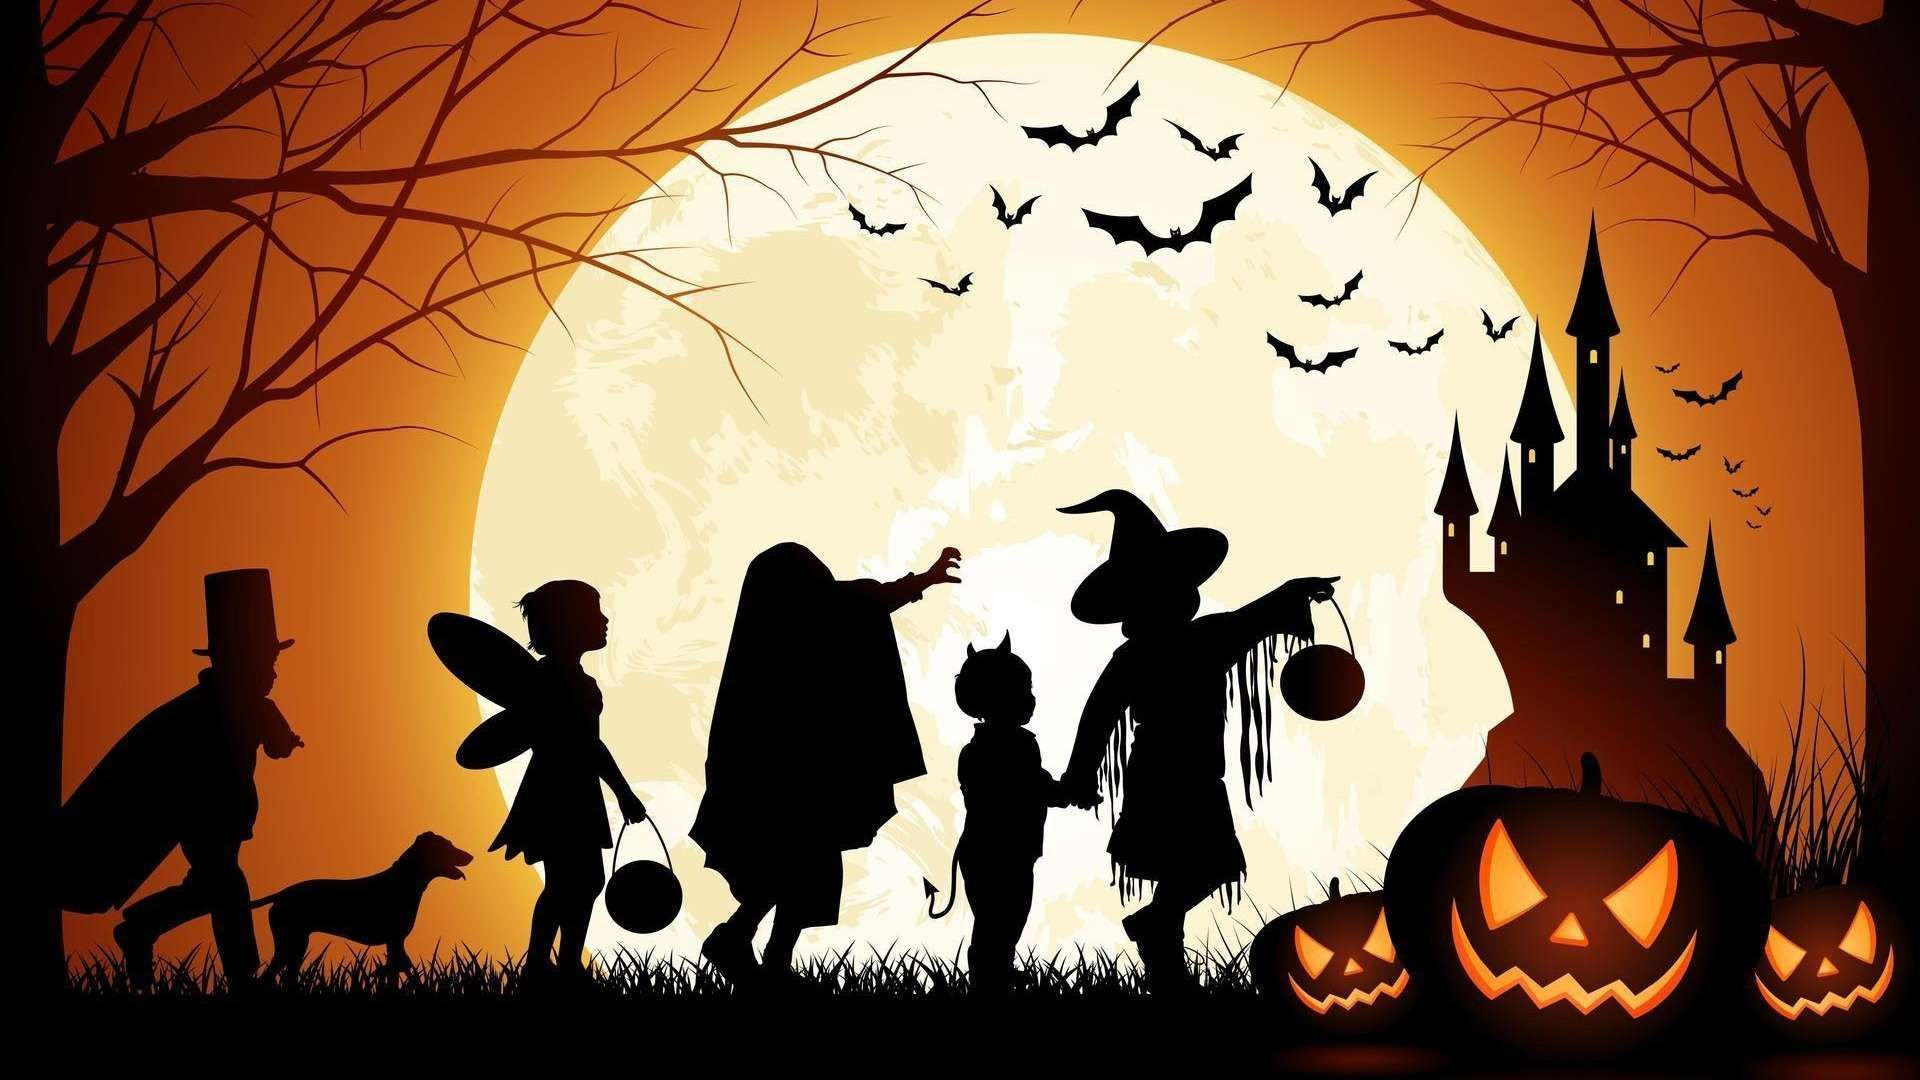 Halloween Wallpapers Hd 1080p Buscar Con Google Halloween Images Halloween Silhouettes Halloween Wallpaper